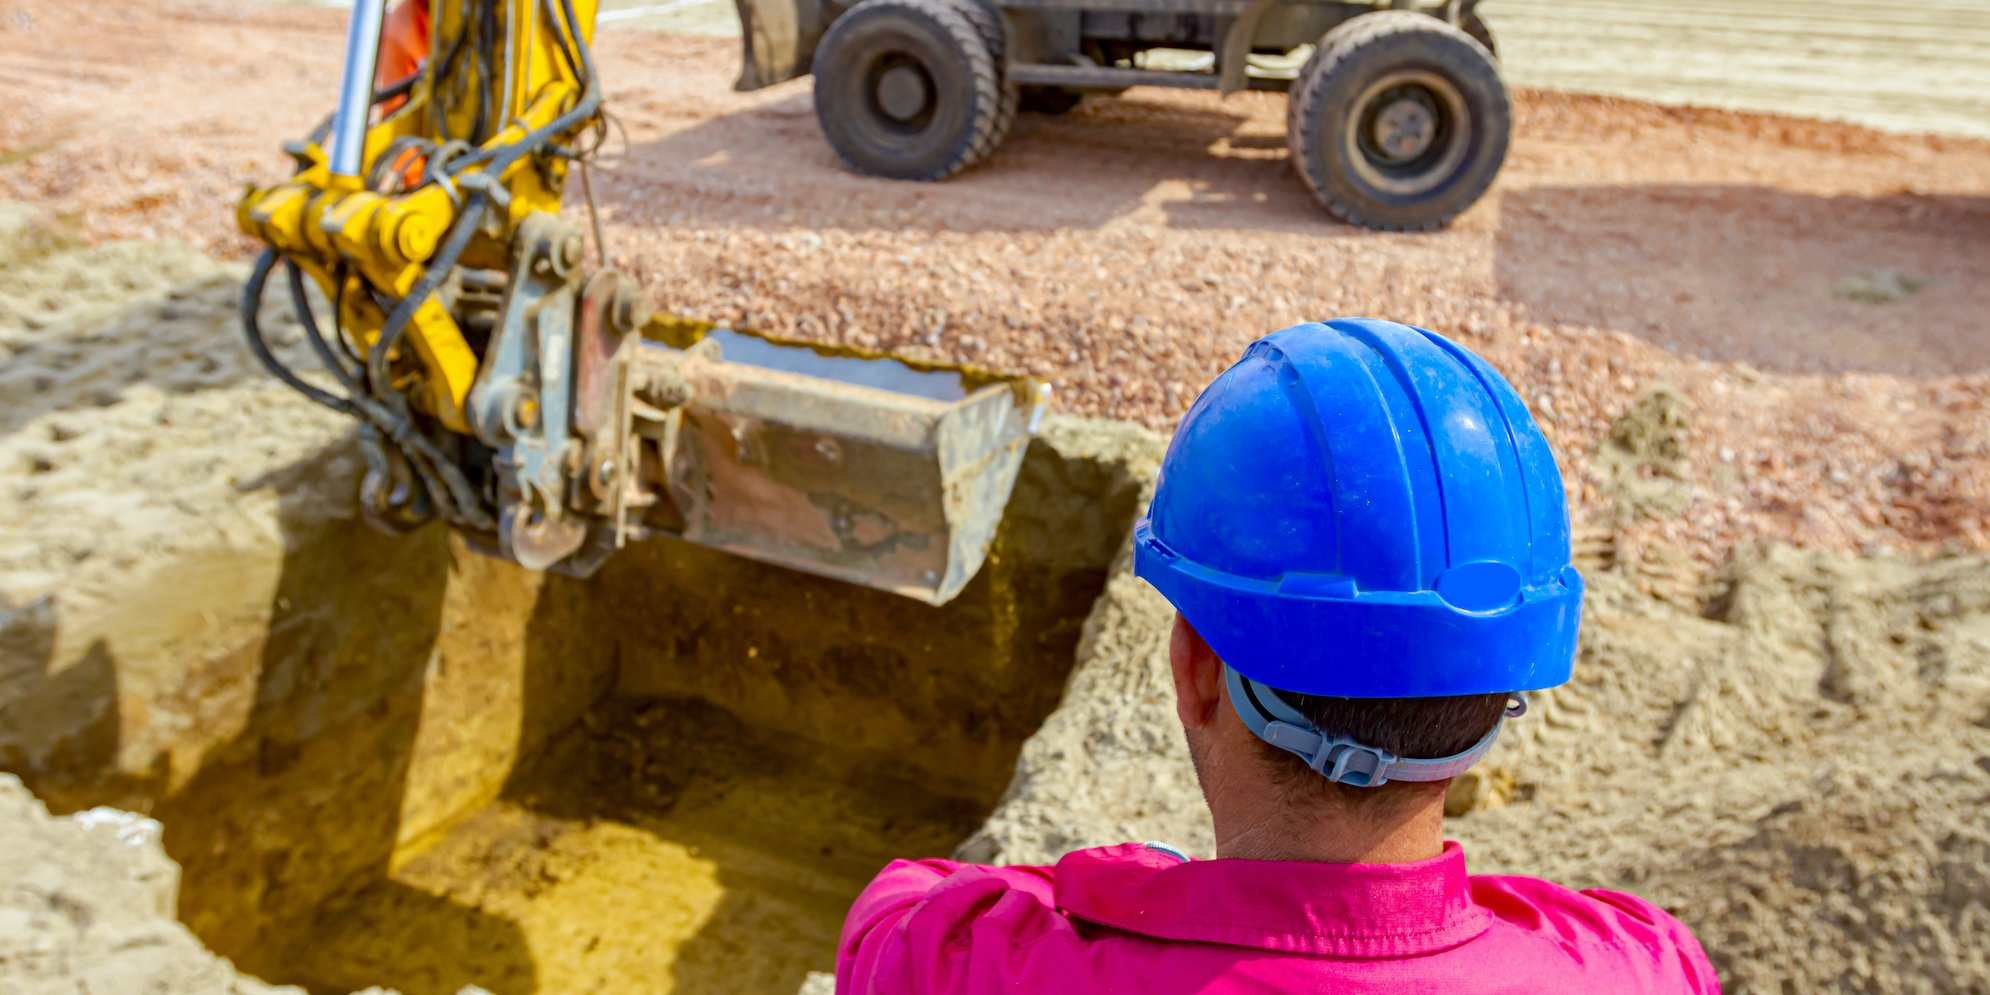 Trenching and Excavation Competent Person Responsibilities